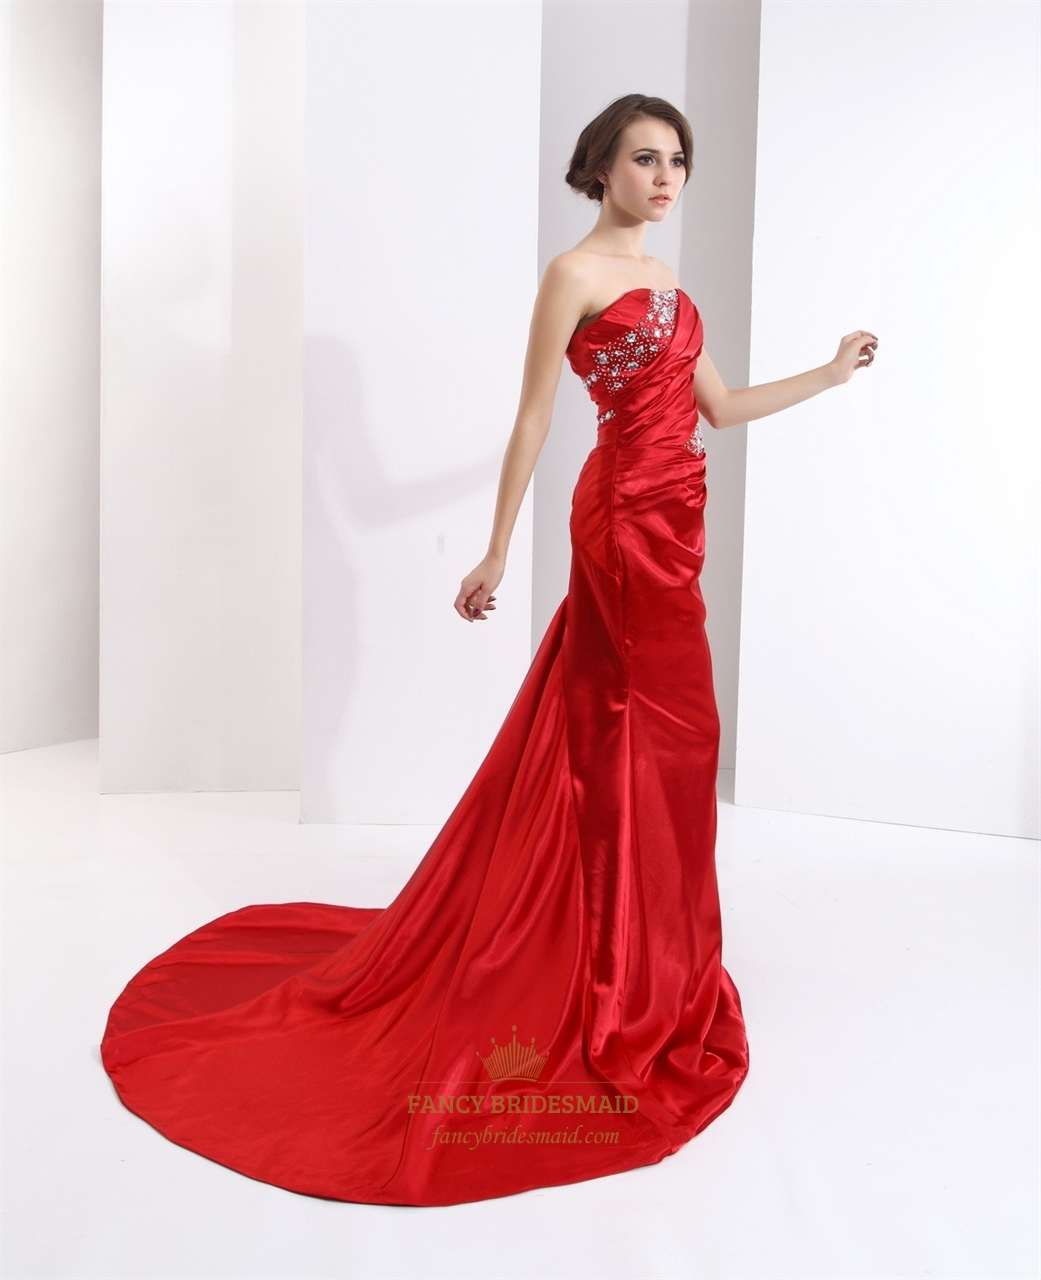 Red Mermaid Strapless Prom Dress With Ruched Bust And